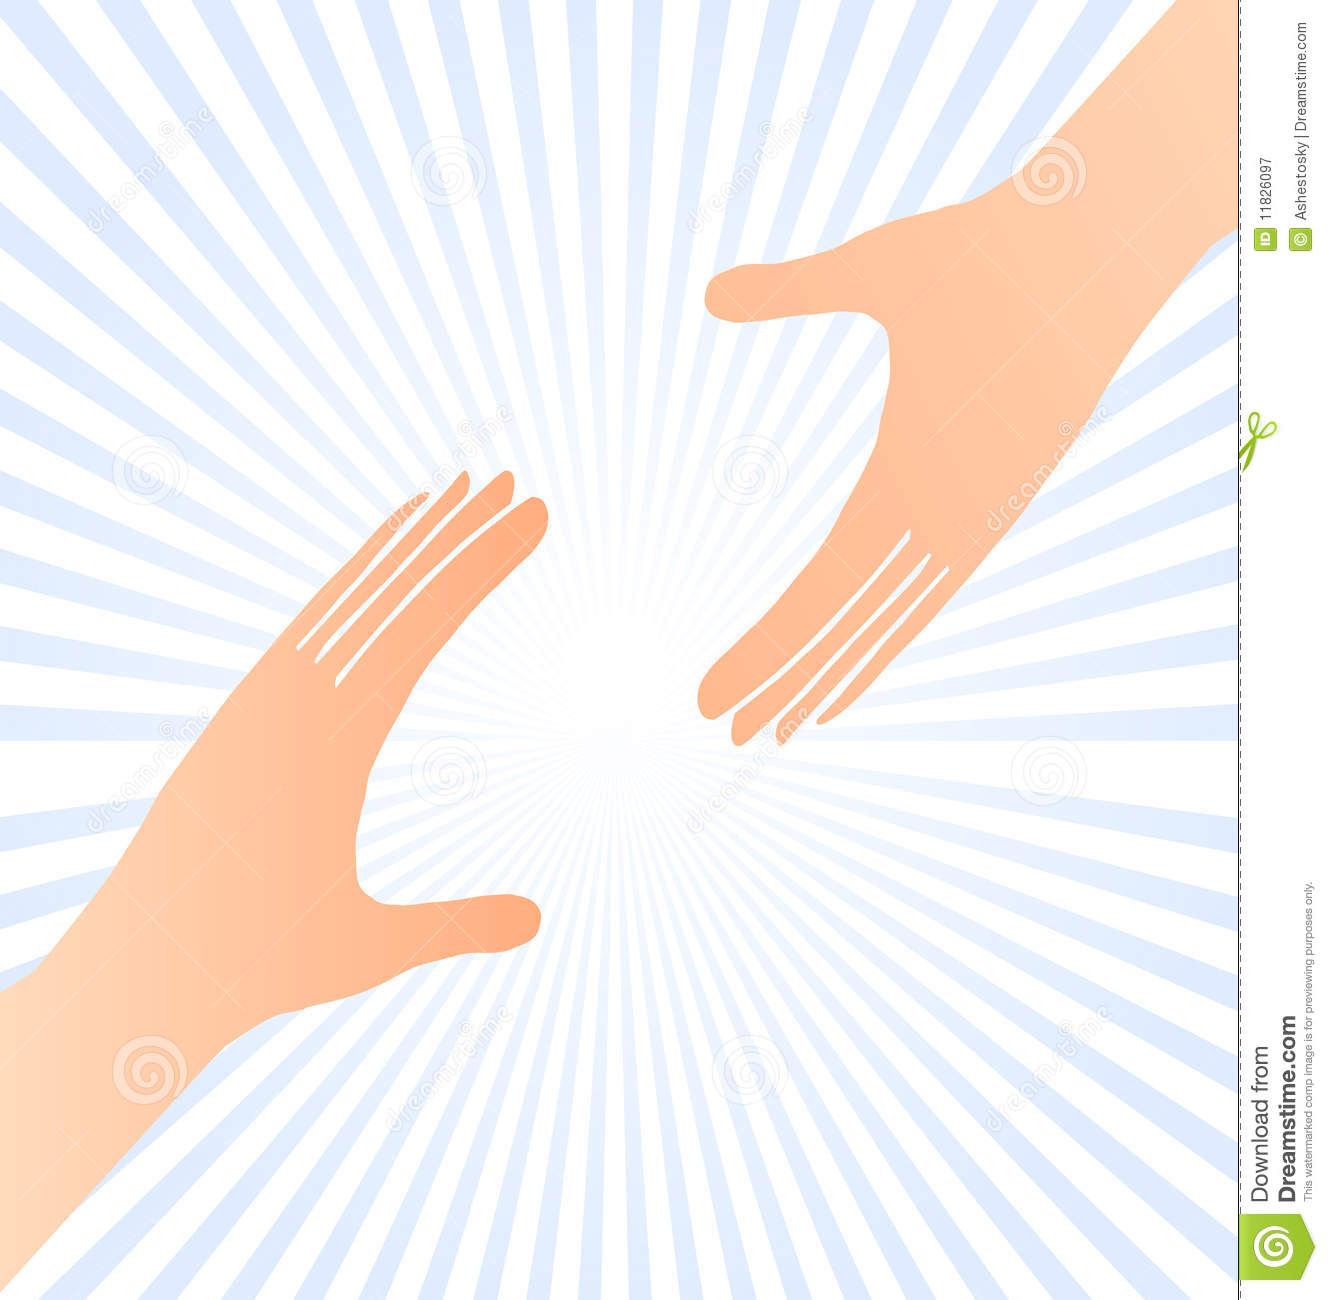 Reaching Hands Help Concept Royalty Free Stock Photography   Image